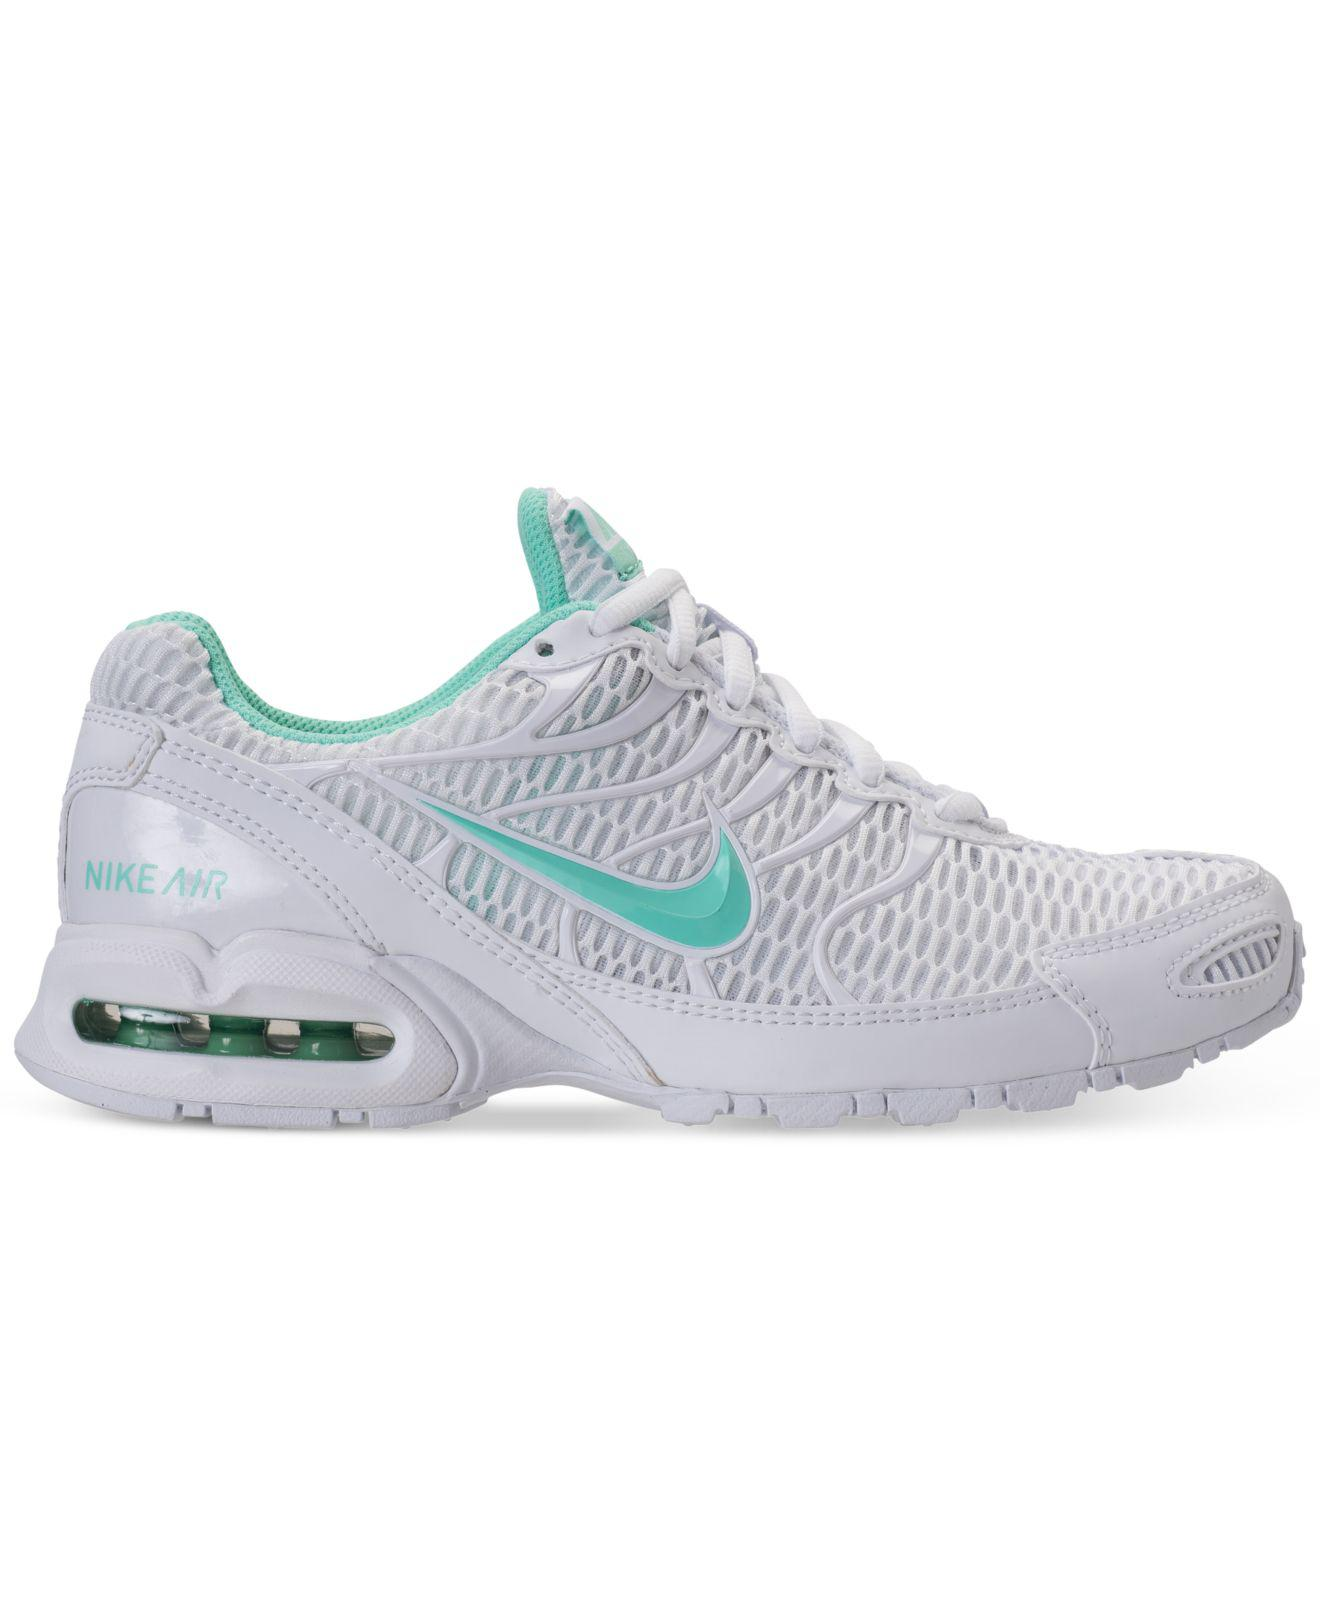 24e44fe19962 cheap lyst nike womens air max torch 4 running sneakers from finish line  480ee 08e4c